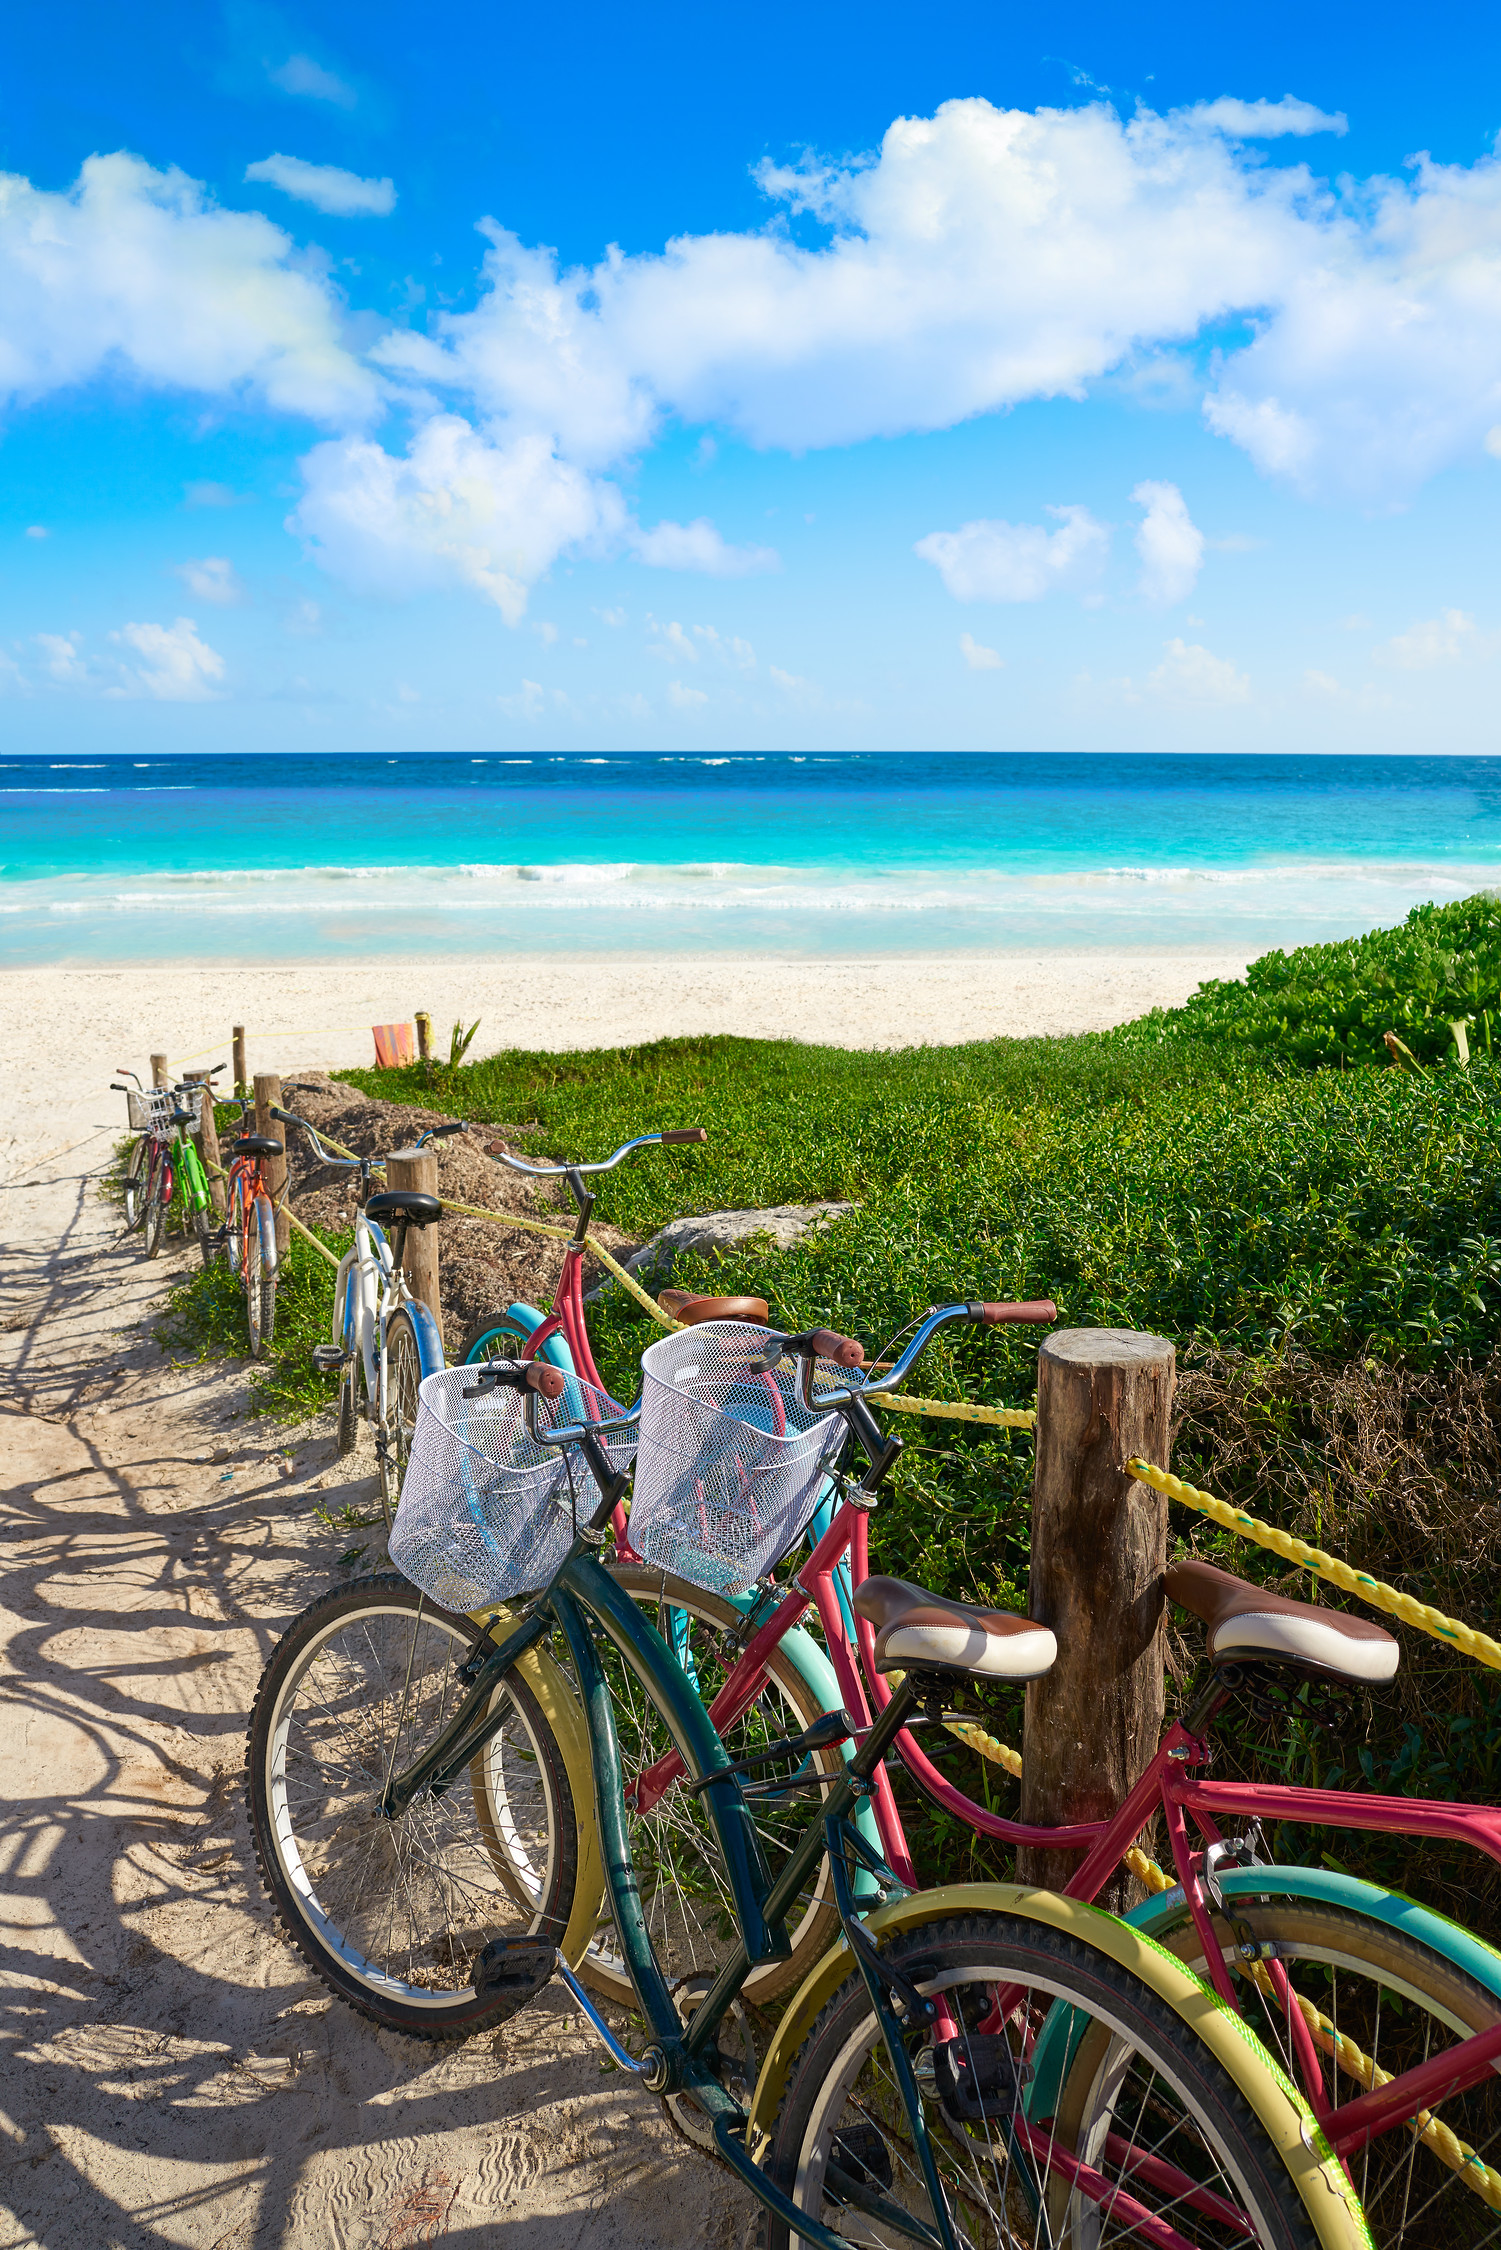 Bicycles on Tulum beach in Mexico